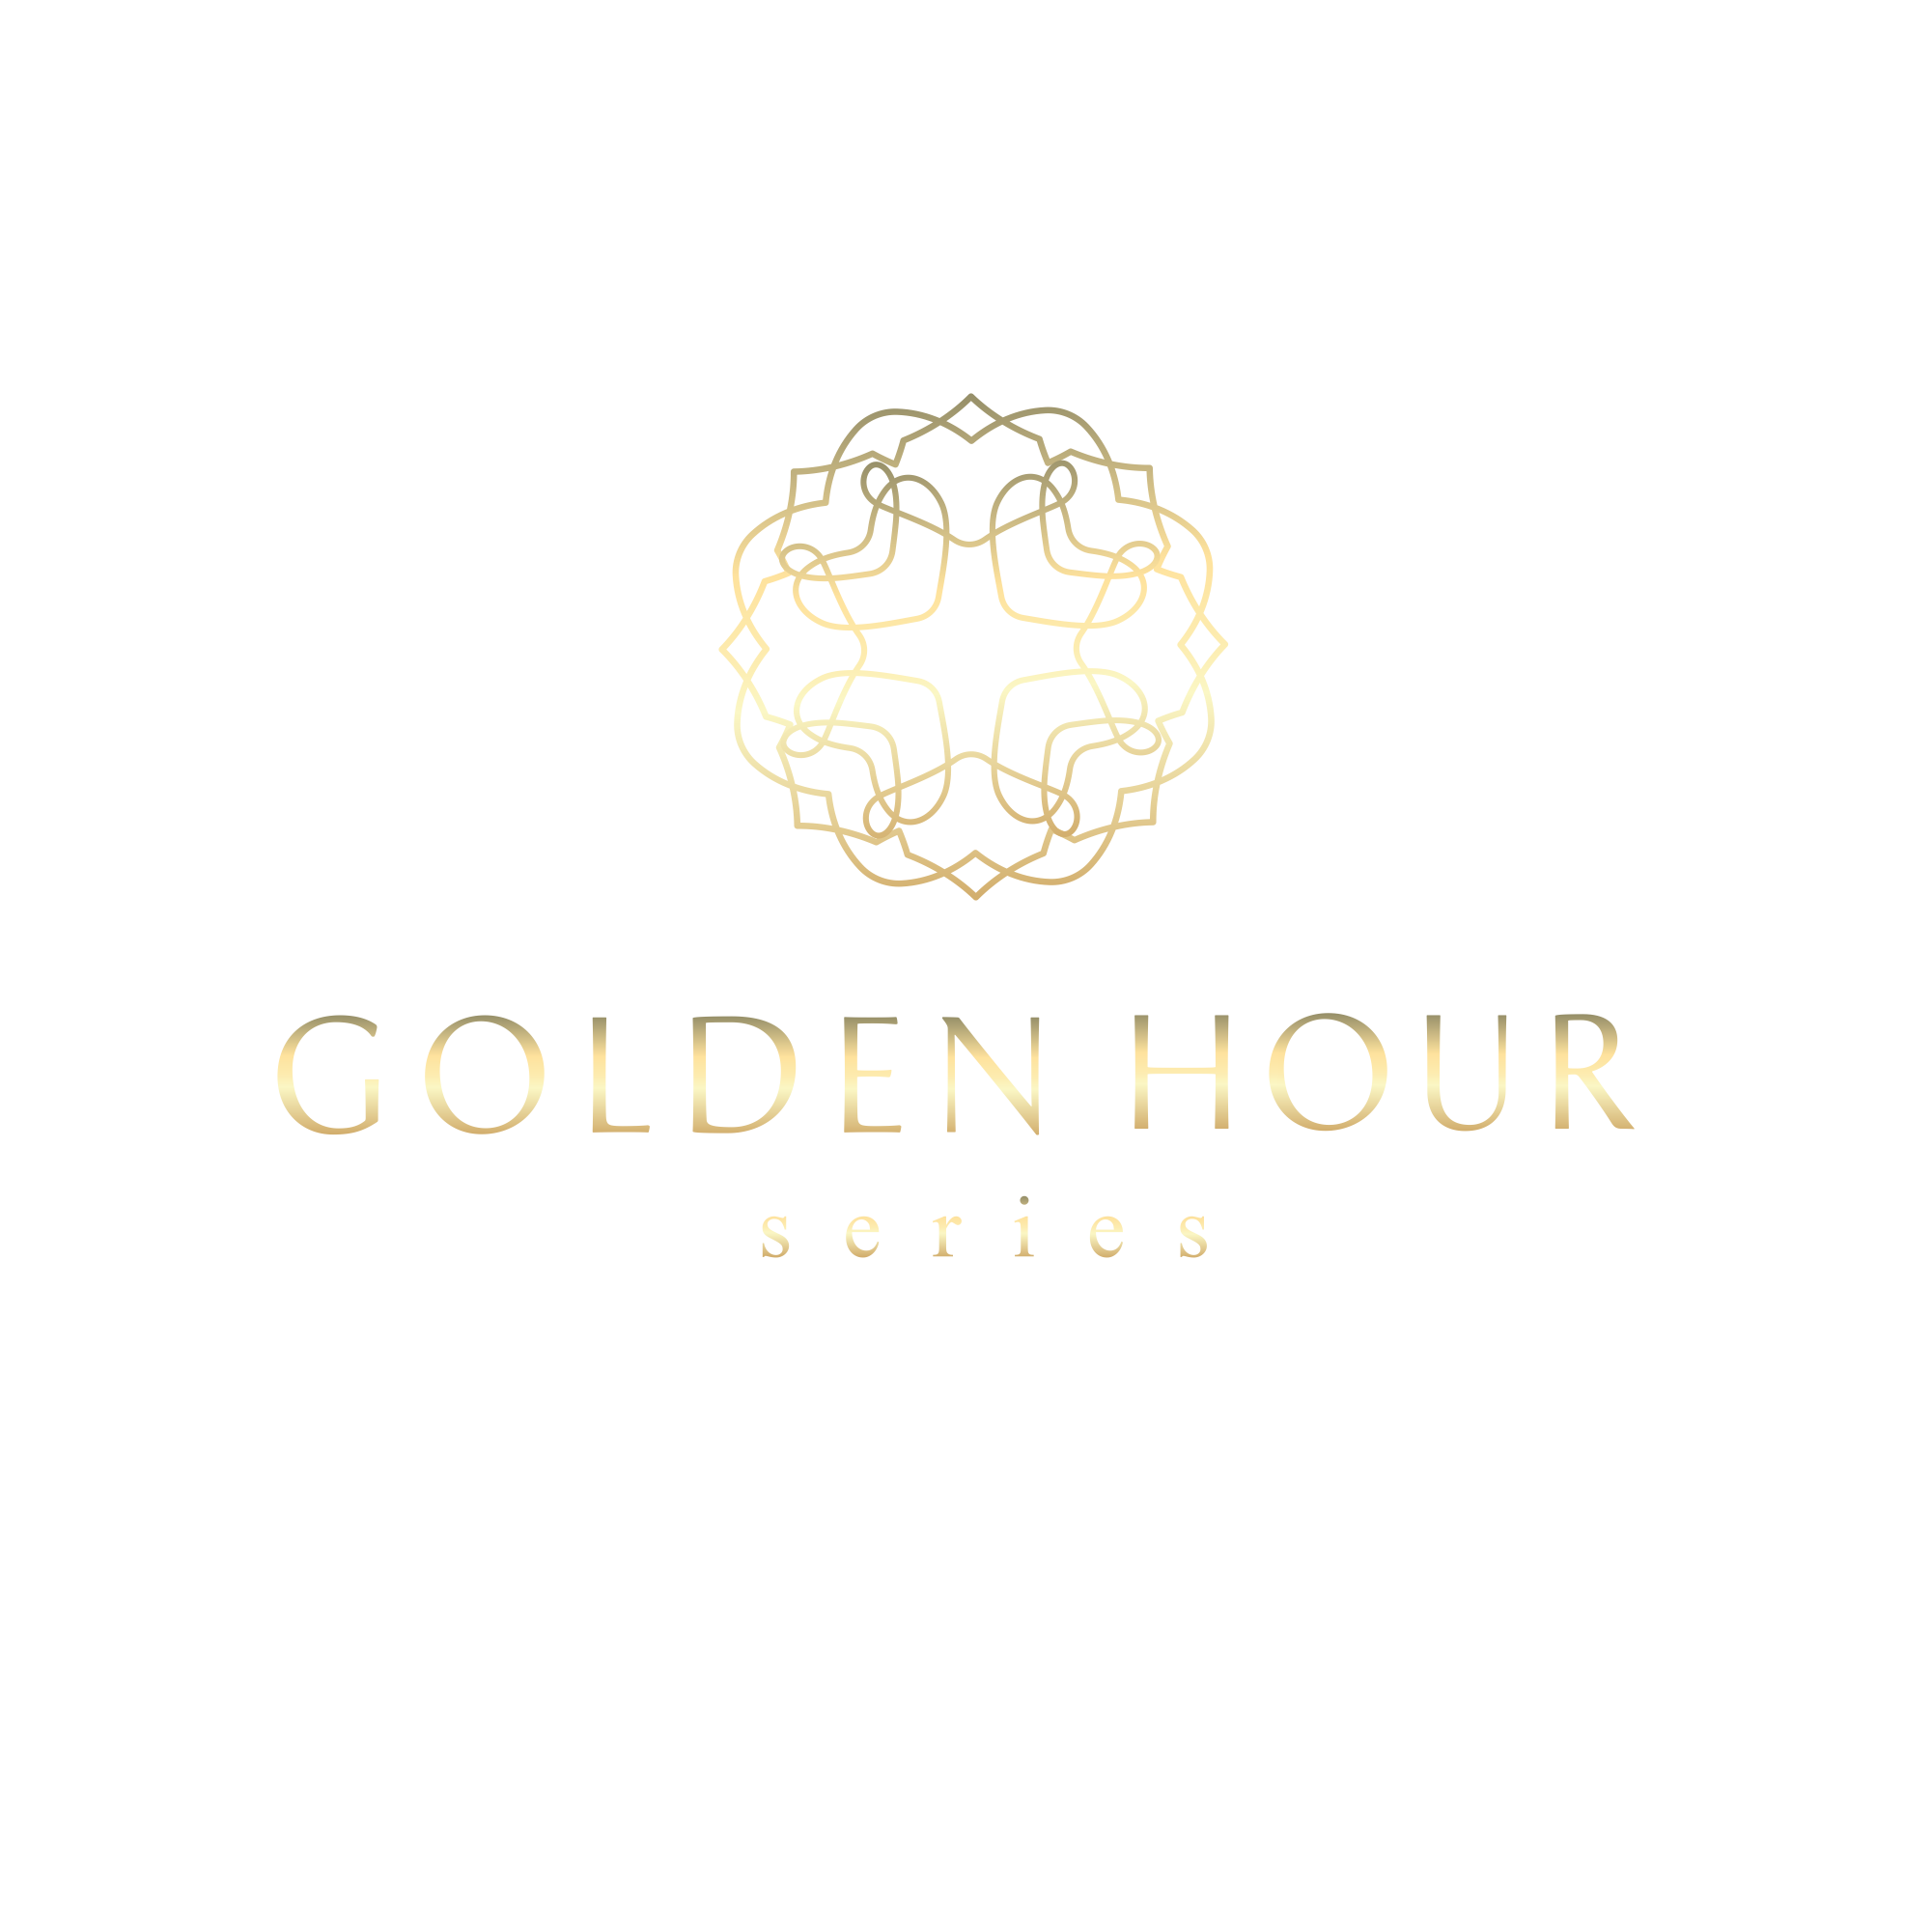 Luxury and modern logo for a online photography series